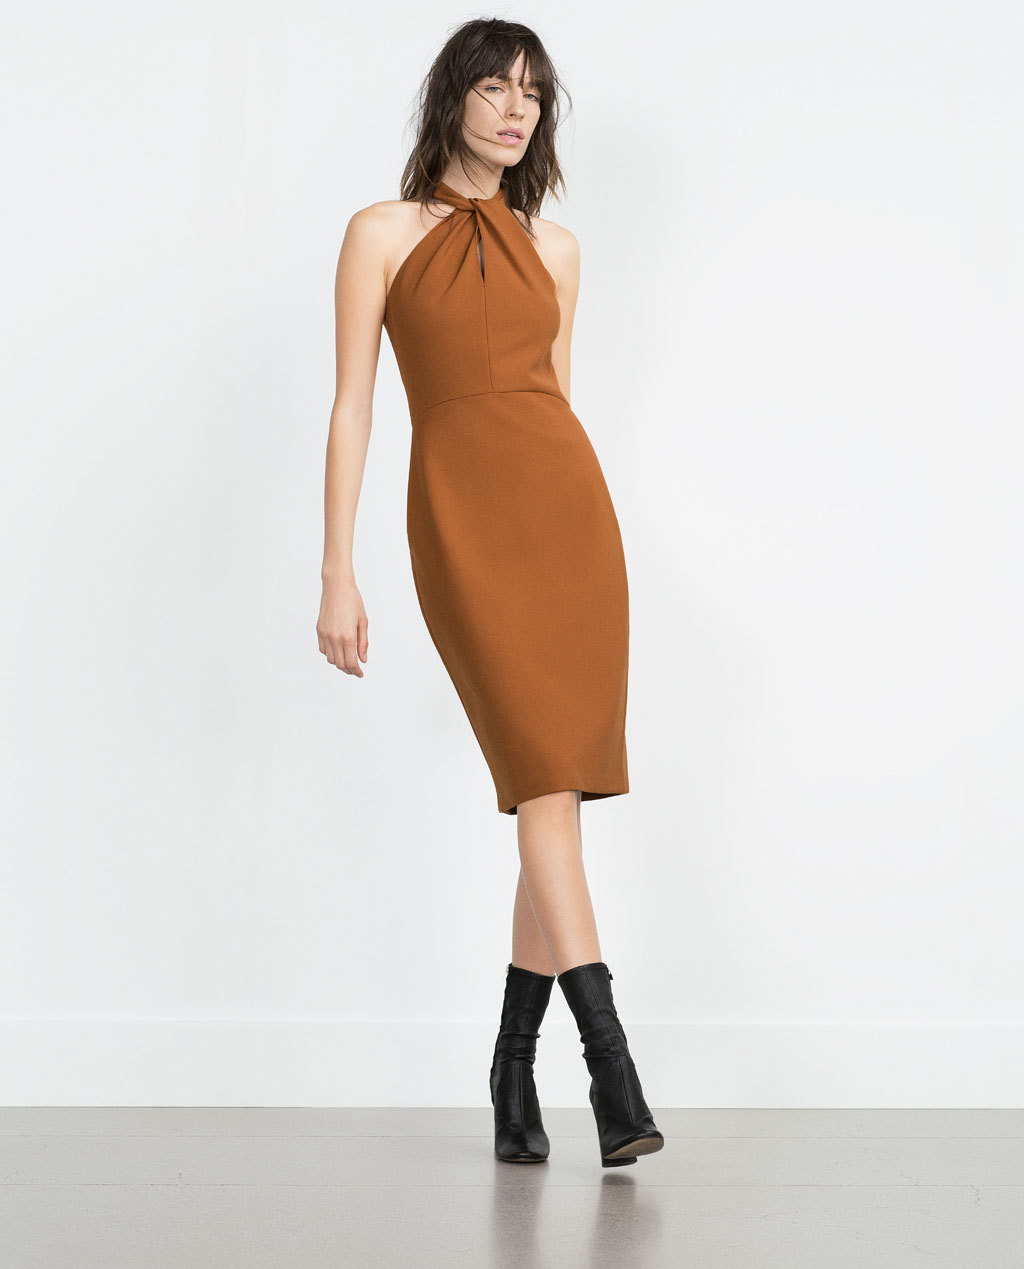 Long Shift Dress - style: shift; length: below the knee; fit: tailored/fitted; pattern: plain; sleeve style: sleeveless; neckline: low halter neck; predominant colour: tan; occasions: evening, occasion; fibres: polyester/polyamide - 100%; sleeve length: sleeveless; pattern type: fabric; texture group: jersey - stretchy/drapey; season: a/w 2015; wardrobe: event